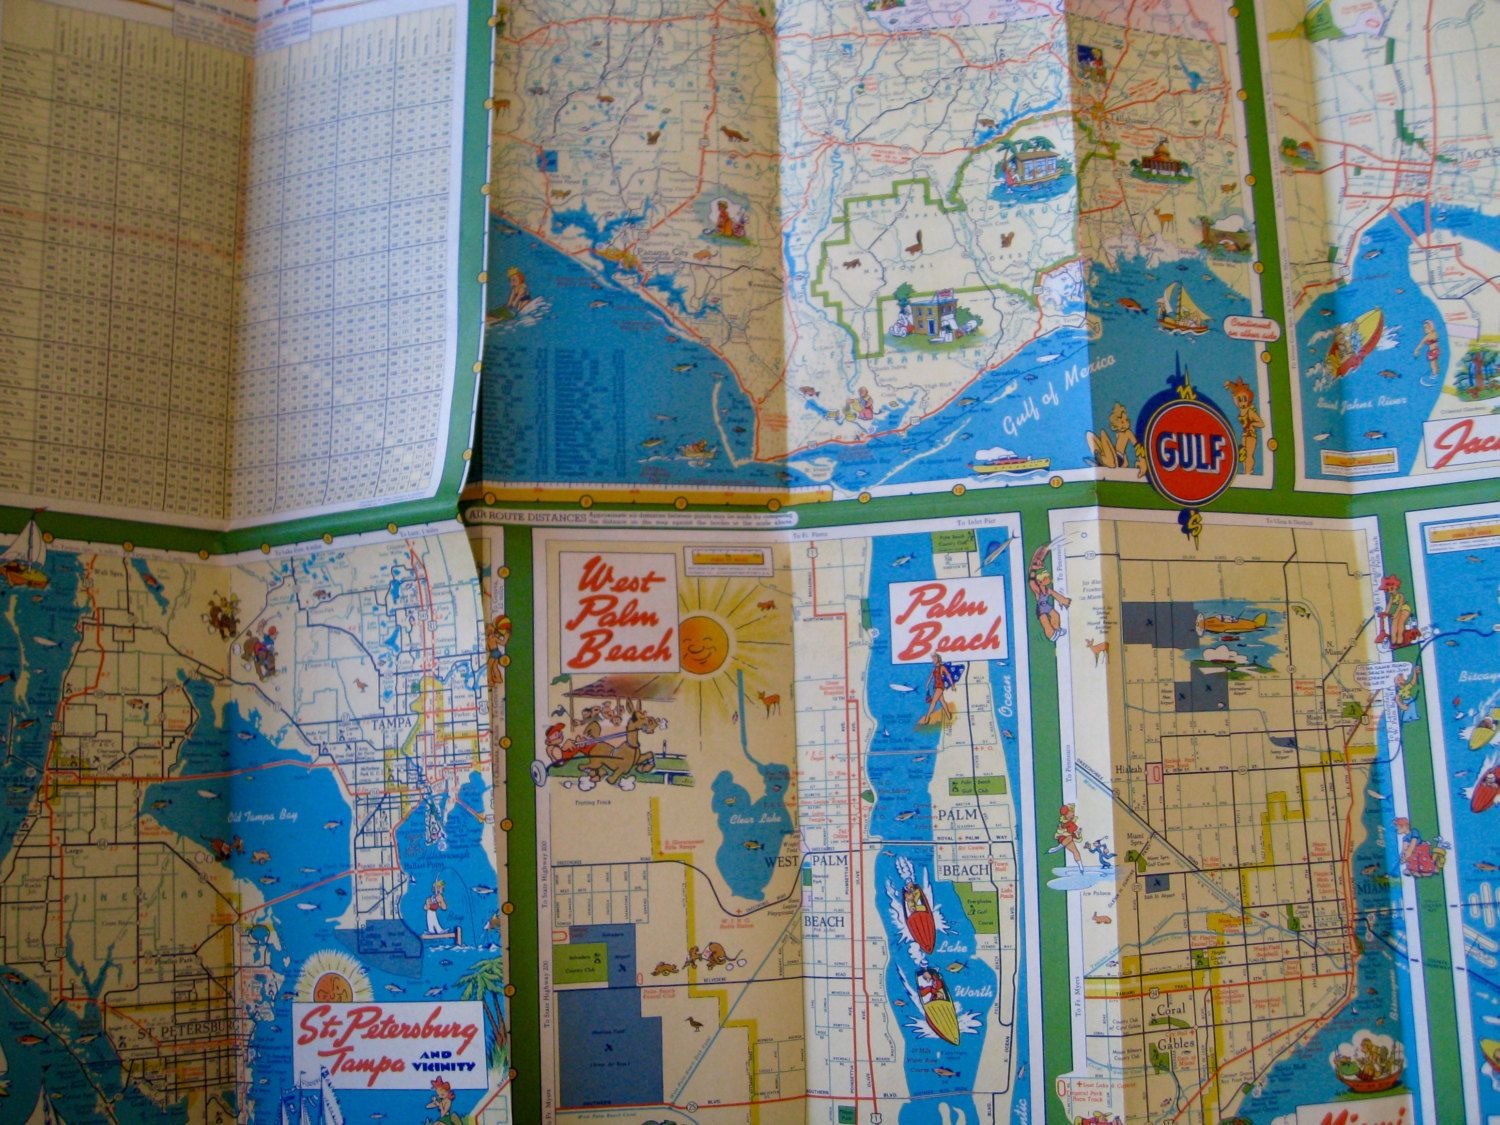 Road Map Florida.Florida With Cuba Rare 1940s Gulf Oil Road Map Travel Map Road